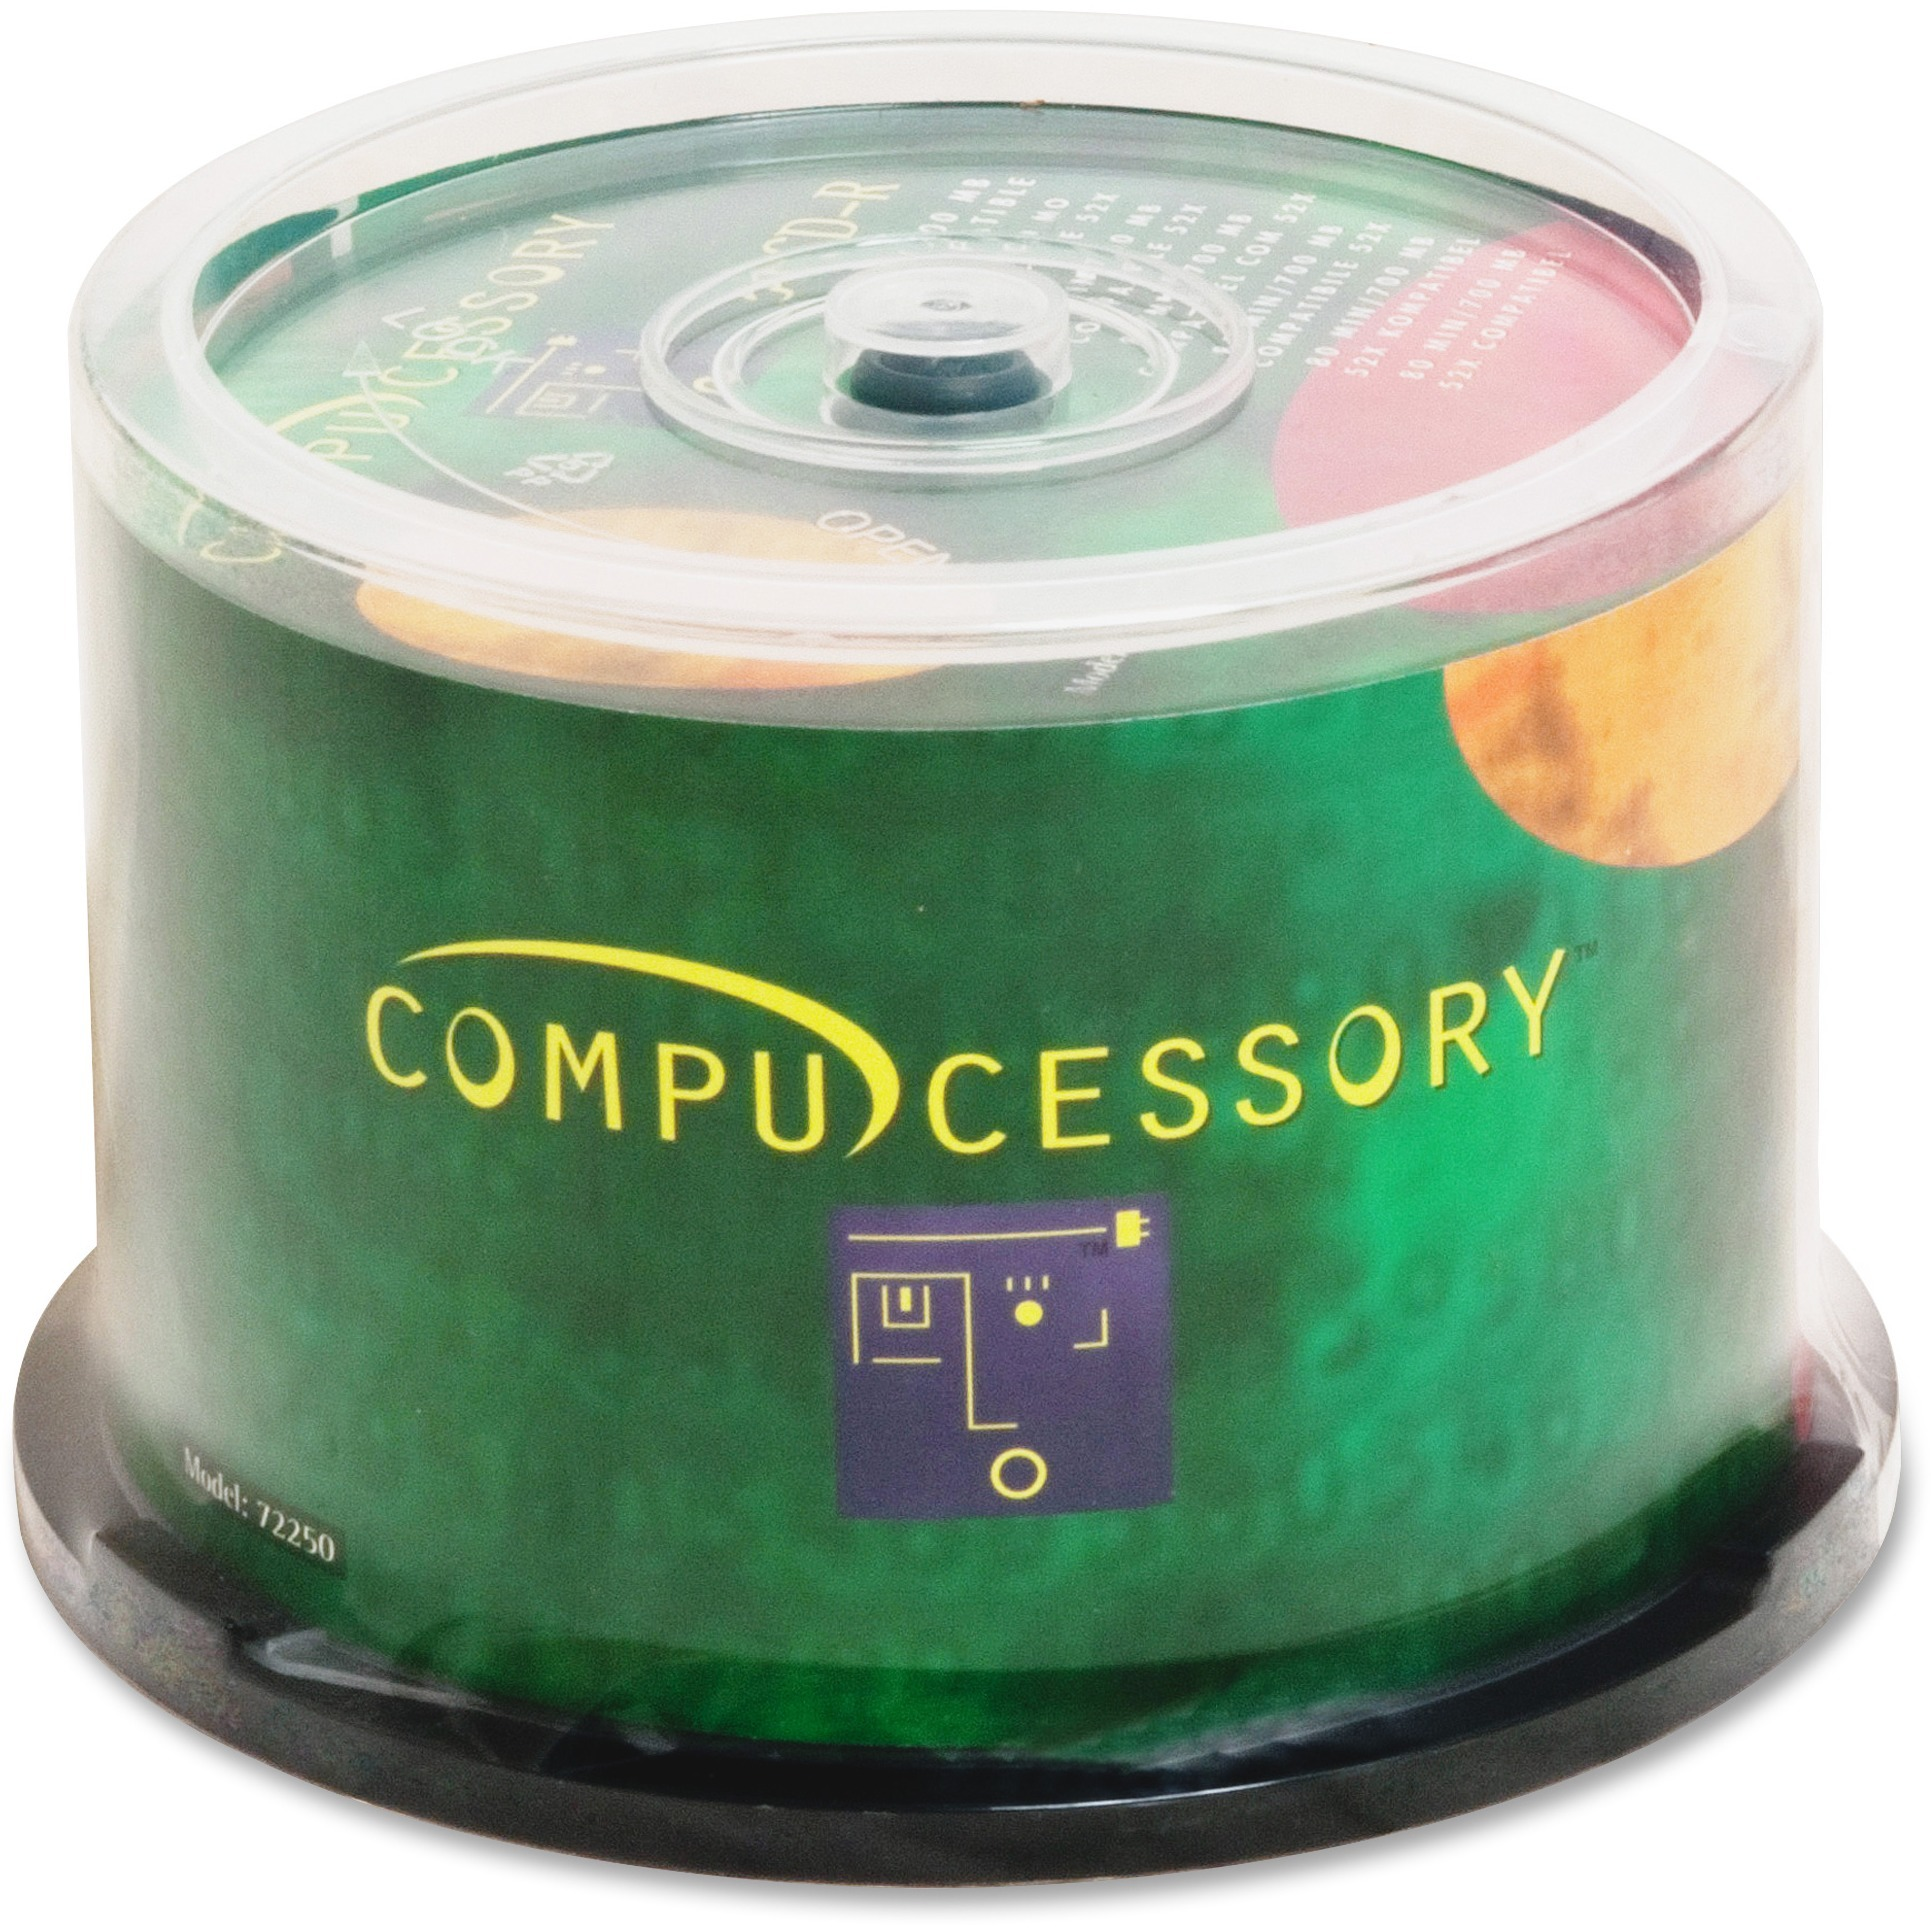 Compucessory, CCS72250, Branded Recordable CD-R Spindle, 50